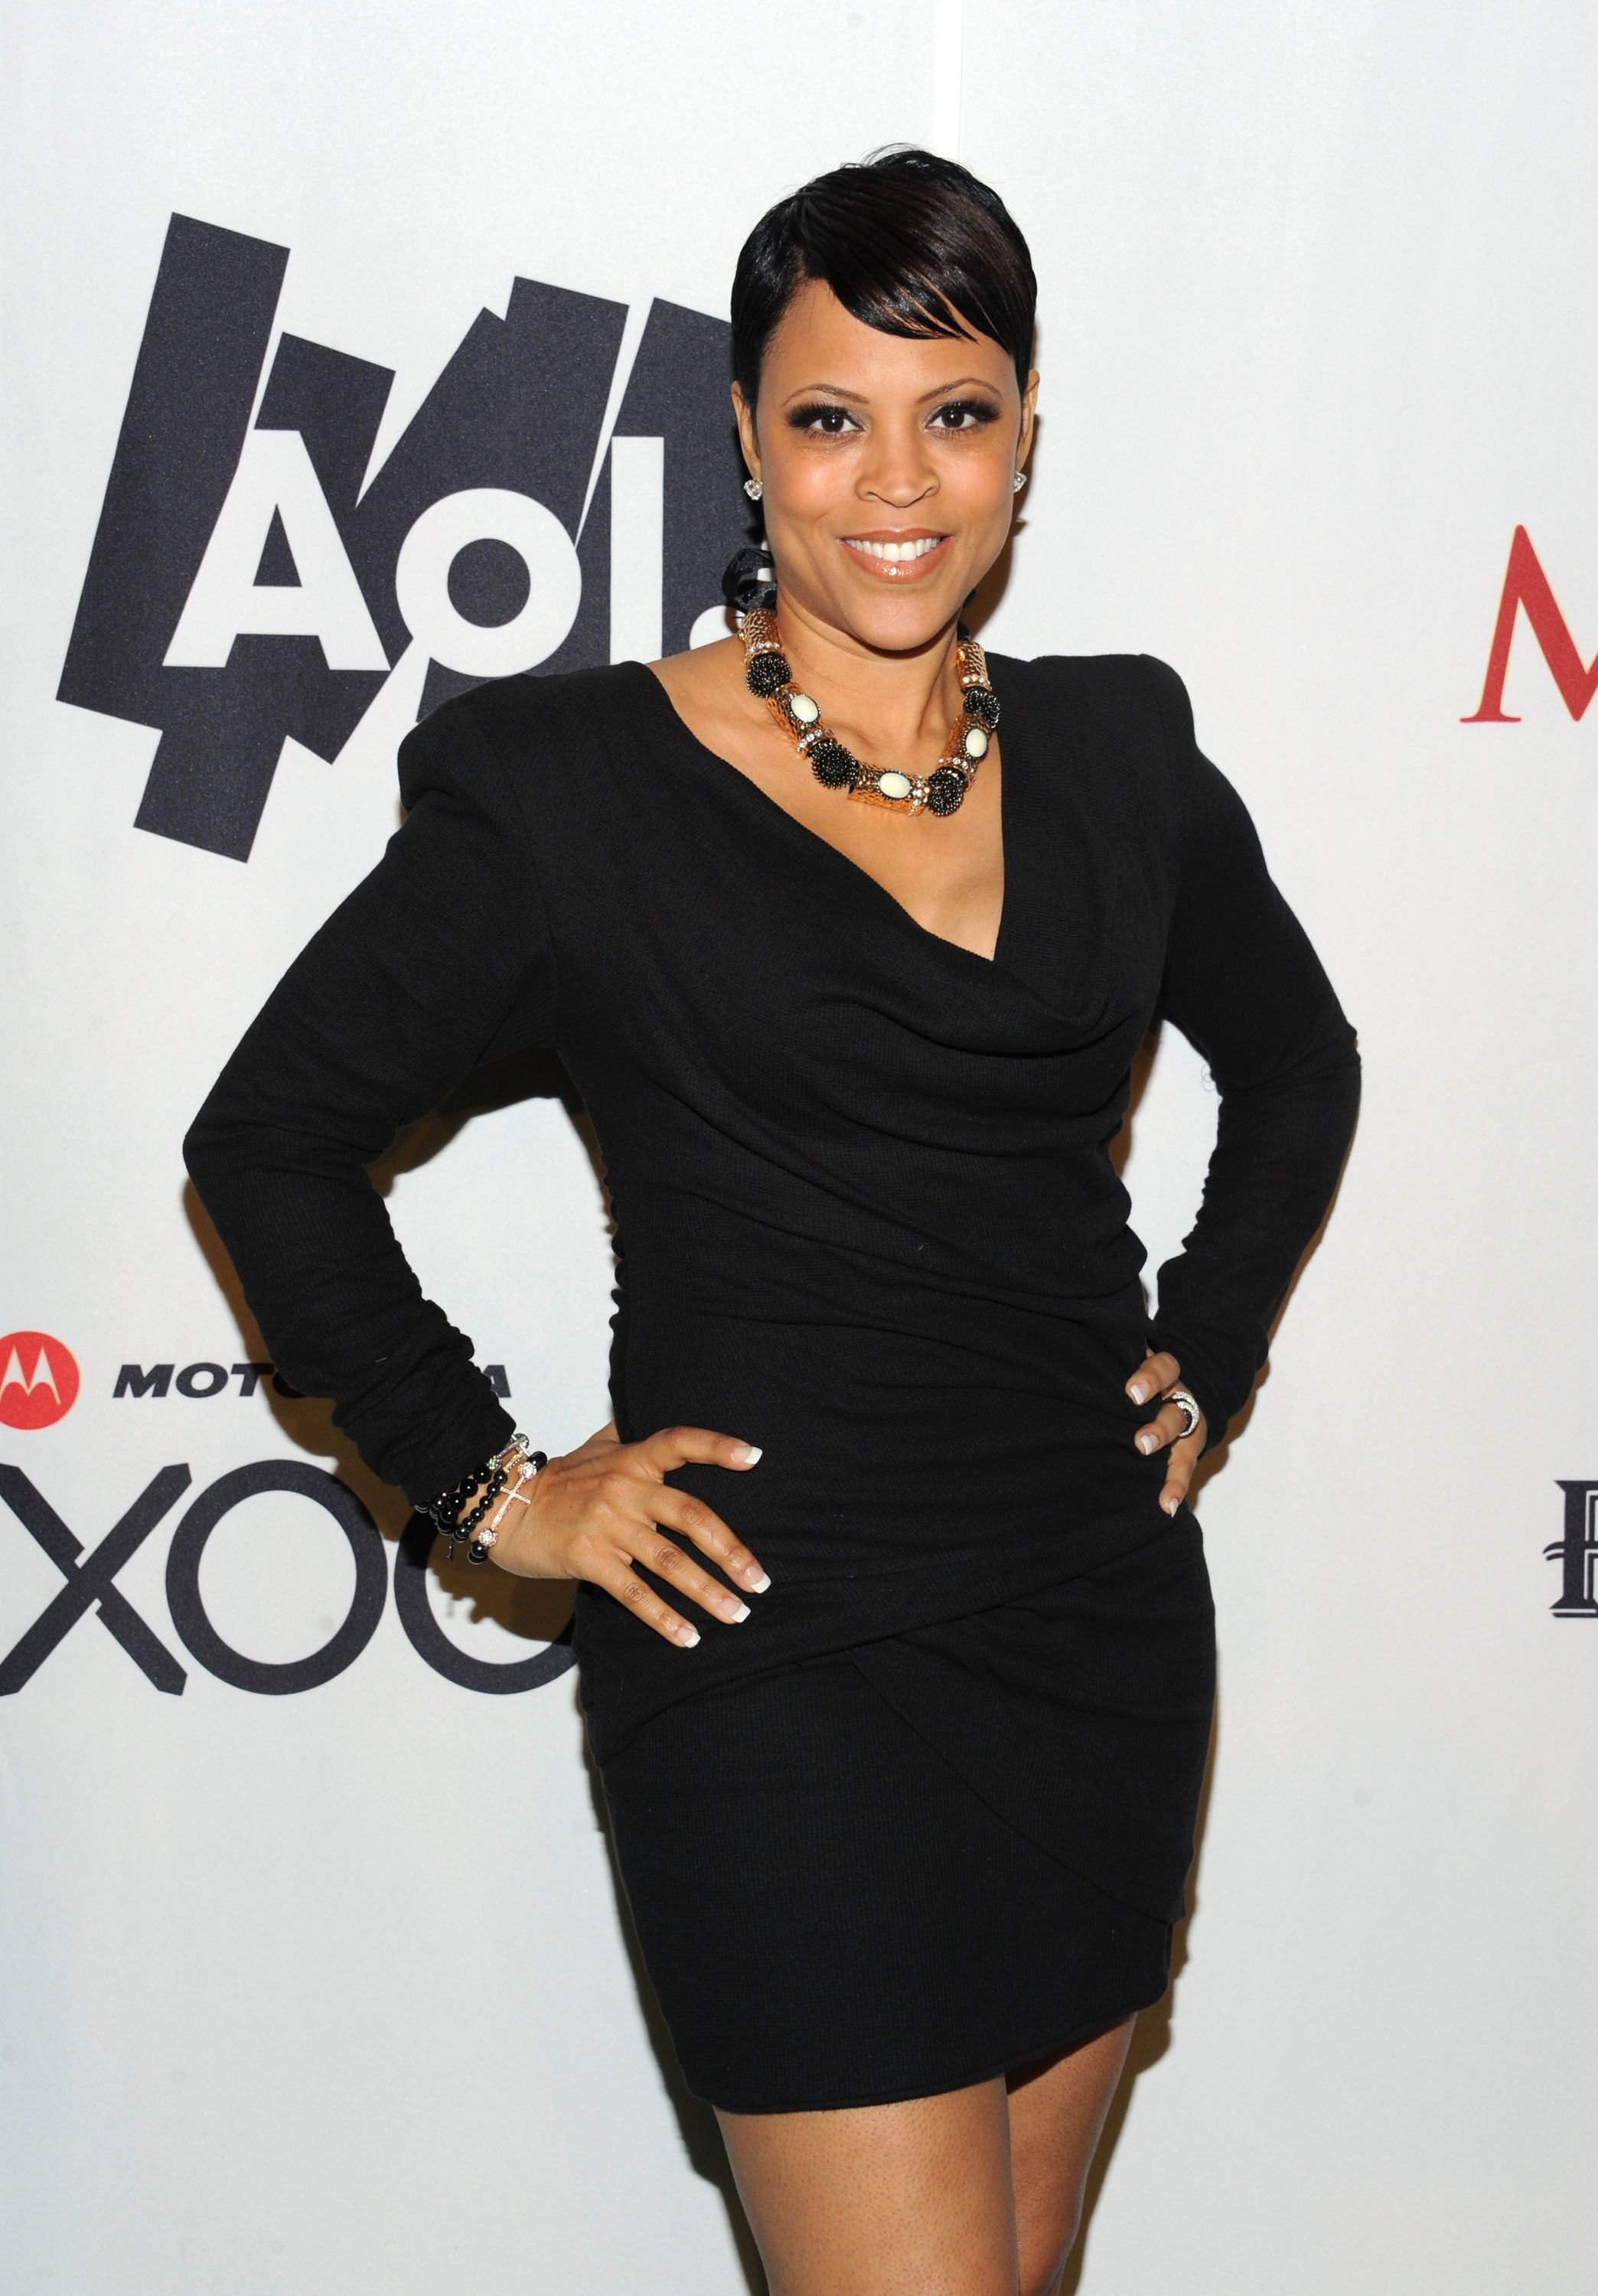 Shaunie O'Neal attends the Maxim party powered by Motorola Xoom at Centennial Hall at Fair Park on February 5, 2011 in Dallas, Texas.   Source: Getty Images